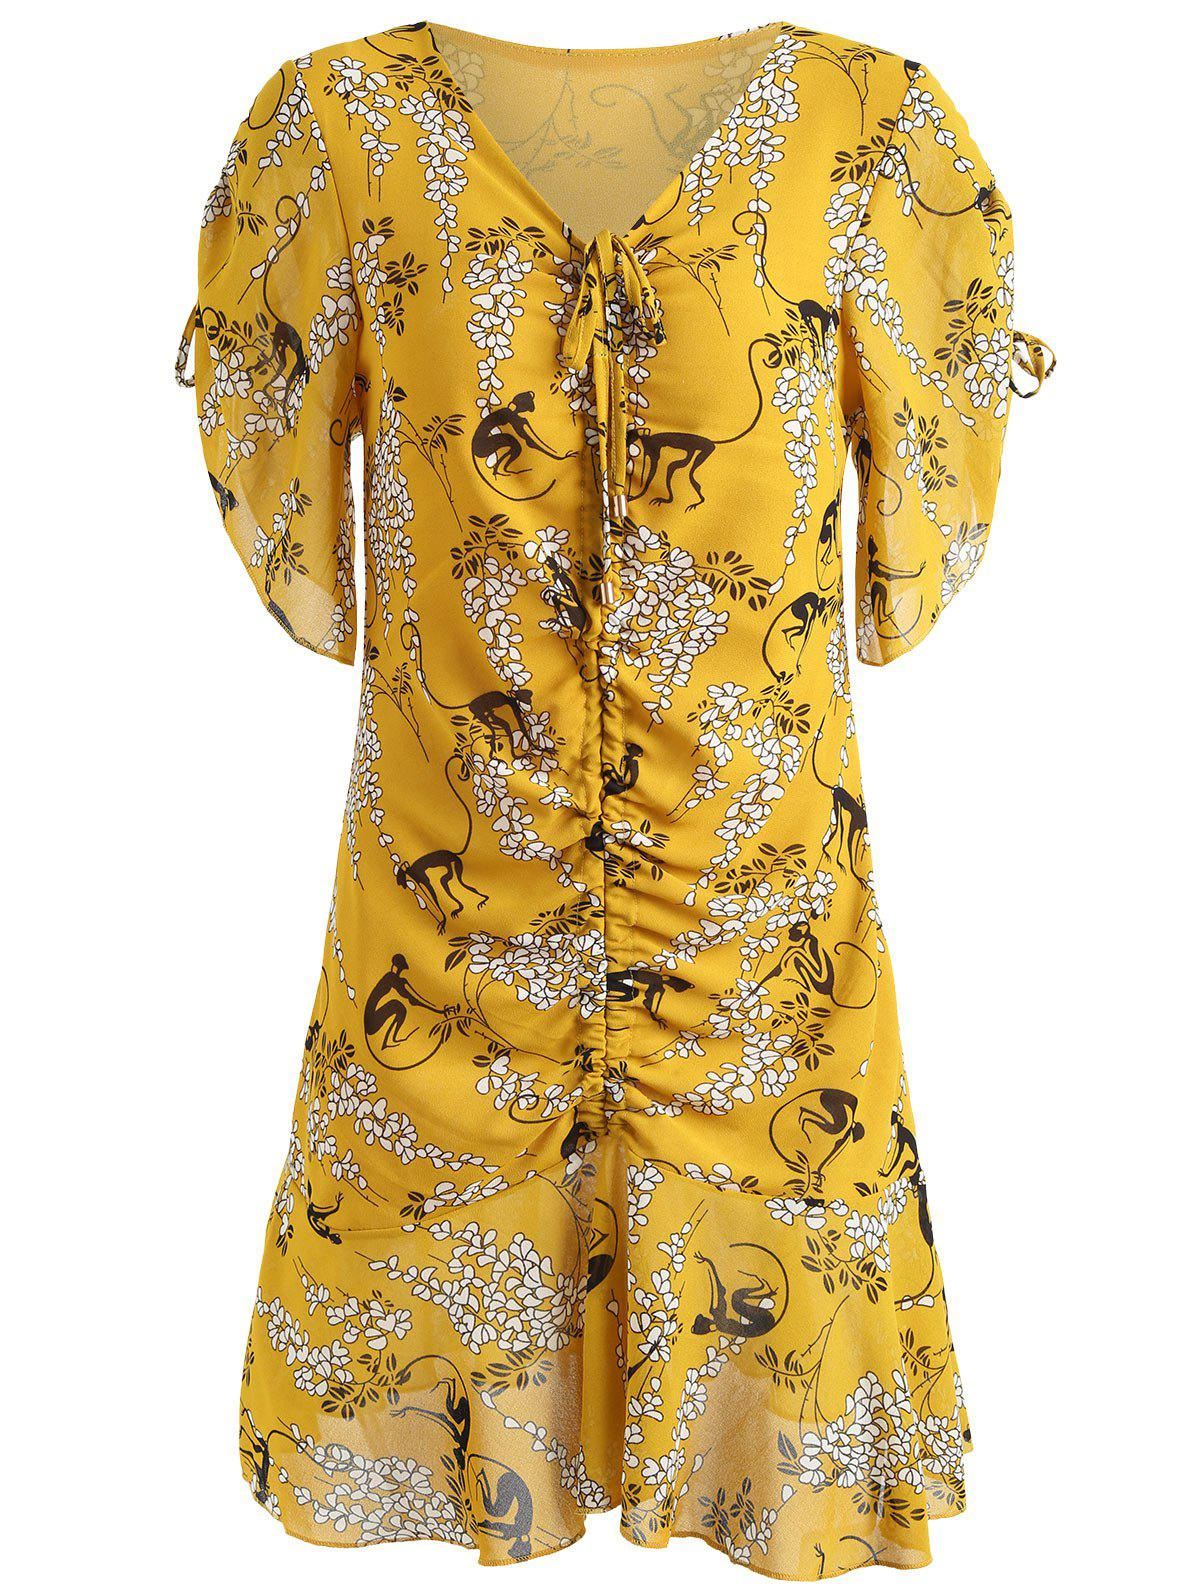 V-neck Ruched Print Dress - SCHOOL BUS YELLOW XL